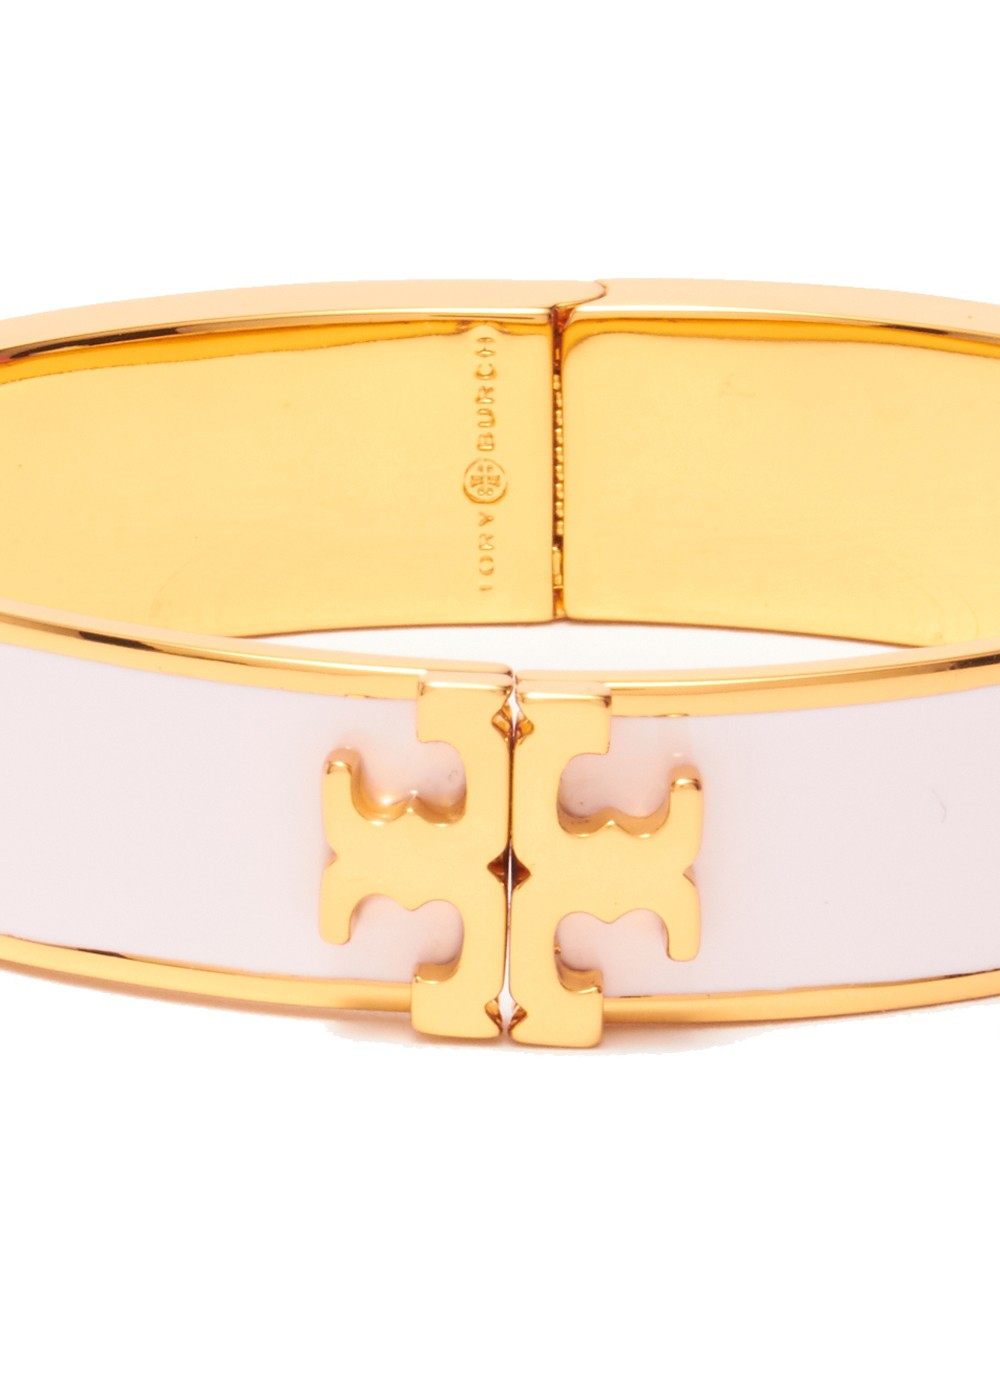 TORY BURCH|トリバーチ|ACCESSORY|アクセサリー|RAISED LOGO ENAMEL HINGED BRACELET